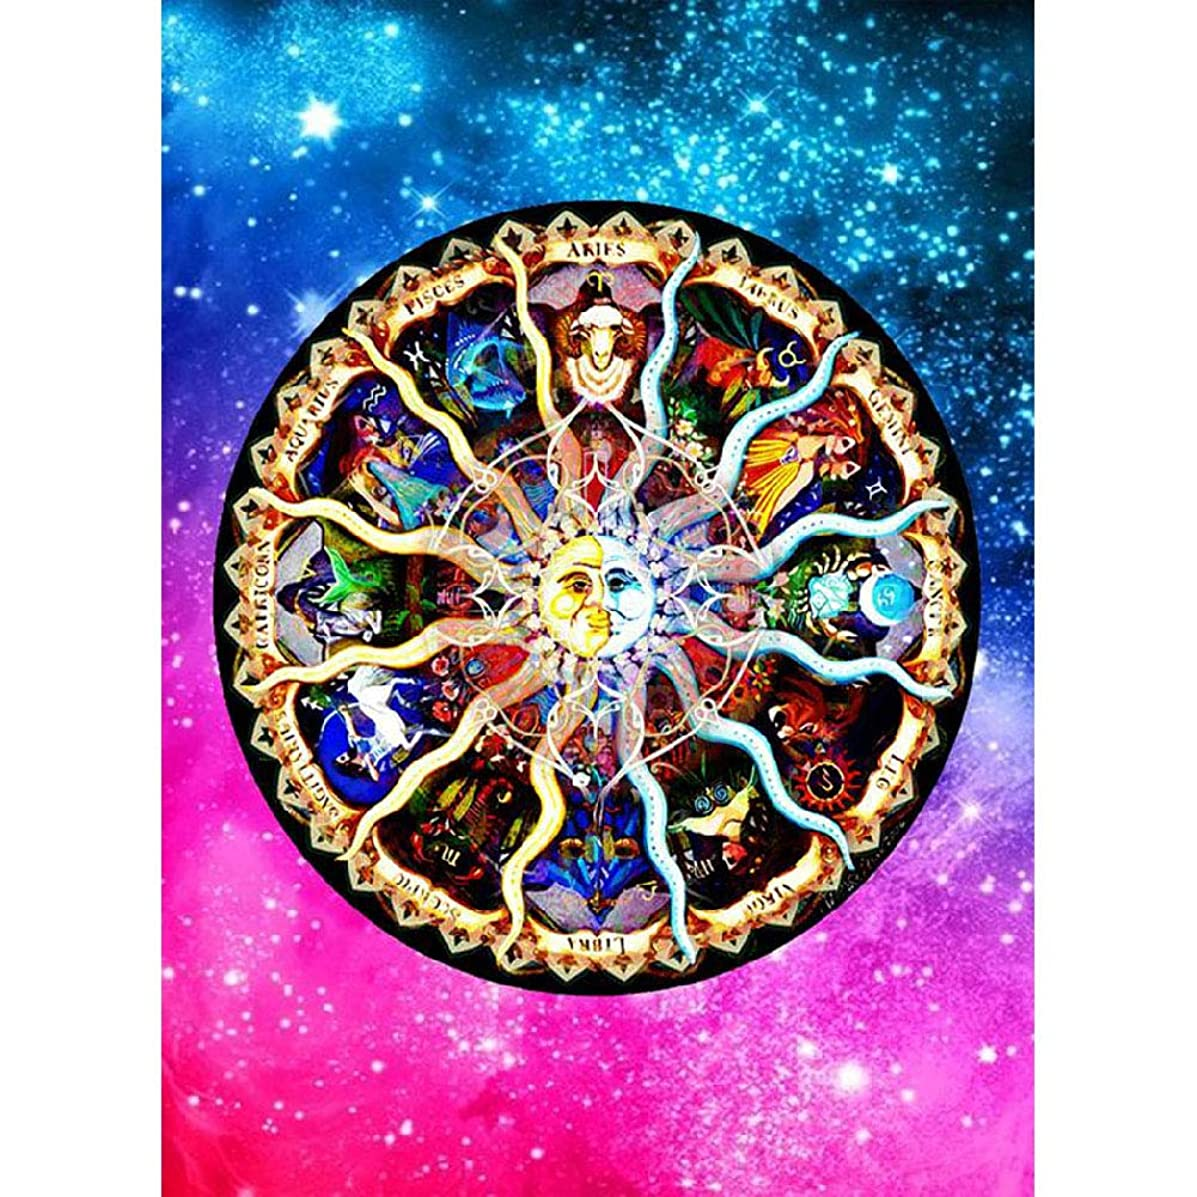 DIY Handwork Store 5D Full Drill Round Diamond Painting Kits by Numbers Crystal Rhinestone Embroidery Art Crafts Gift Cross Stitch Mosaic Colored Mandela Picture Home Wall Decor(13.78''x 17.72'')